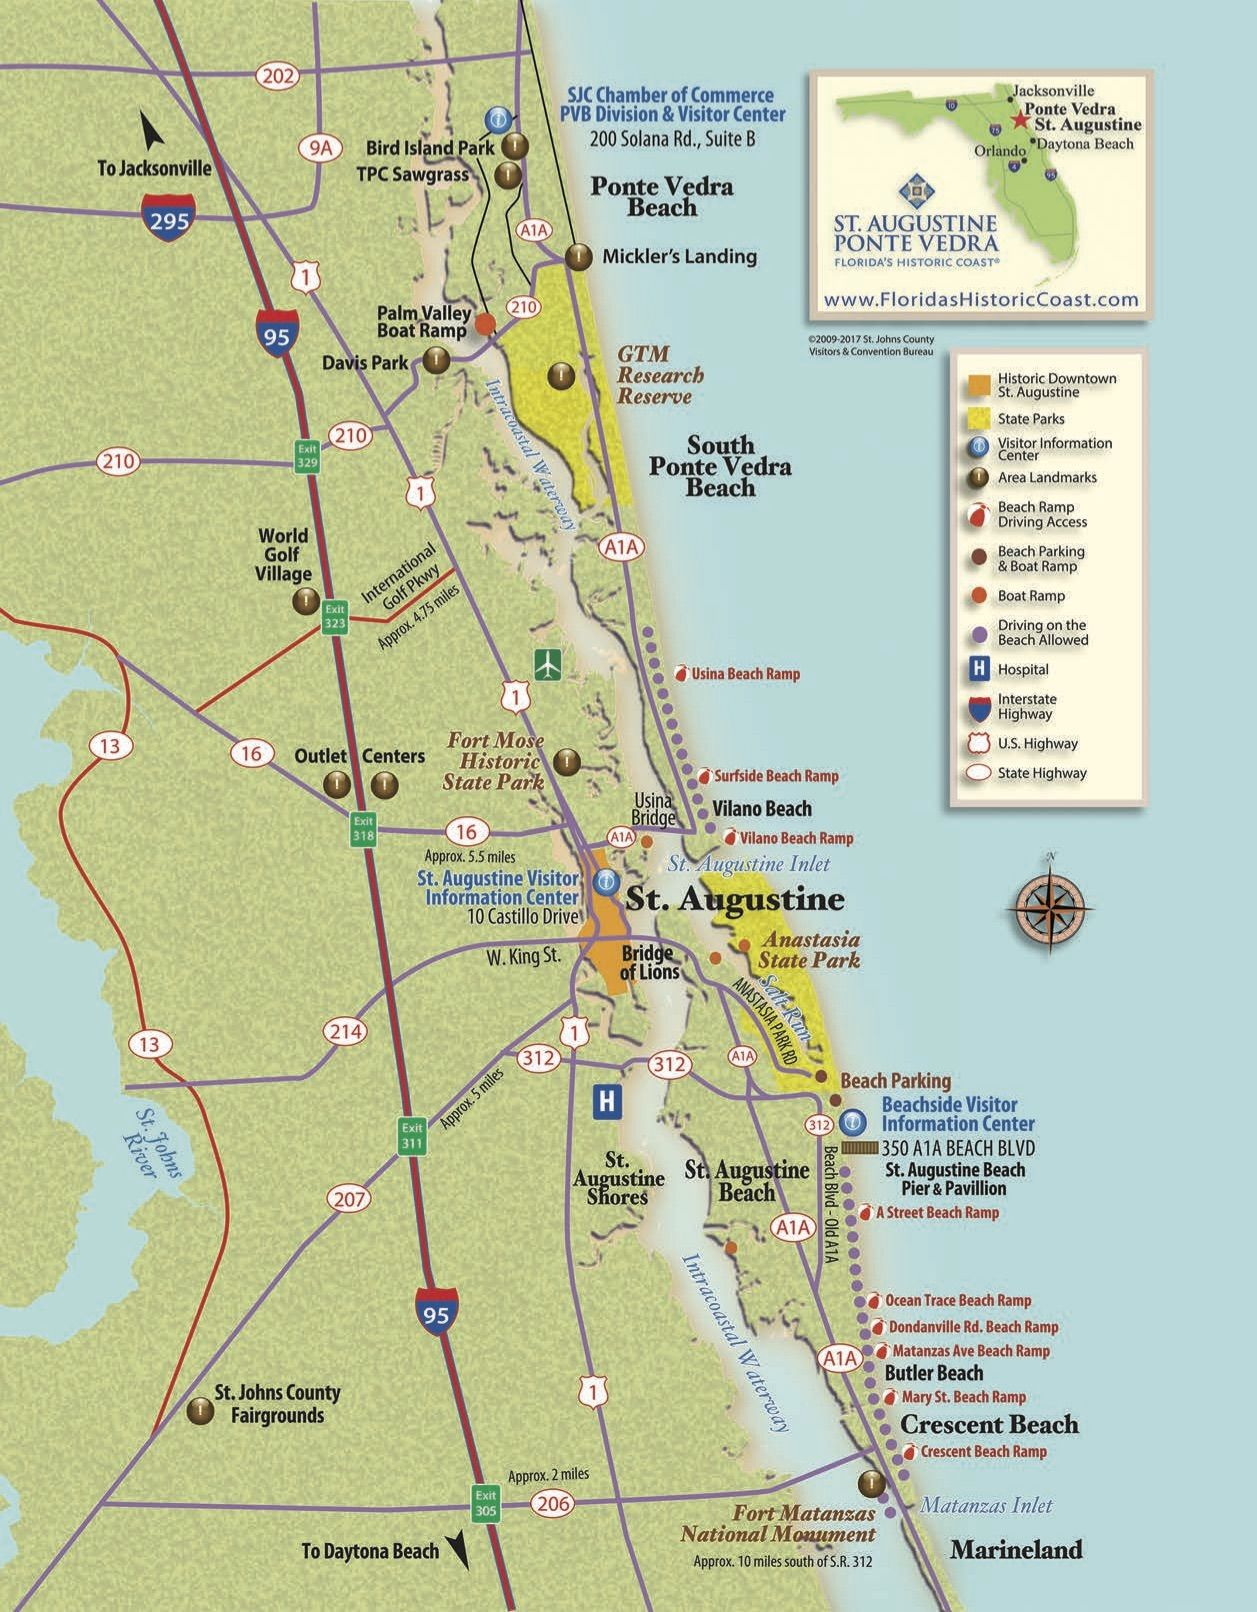 View St. Augustine maps to familiarize yourself with St. Augustine ...